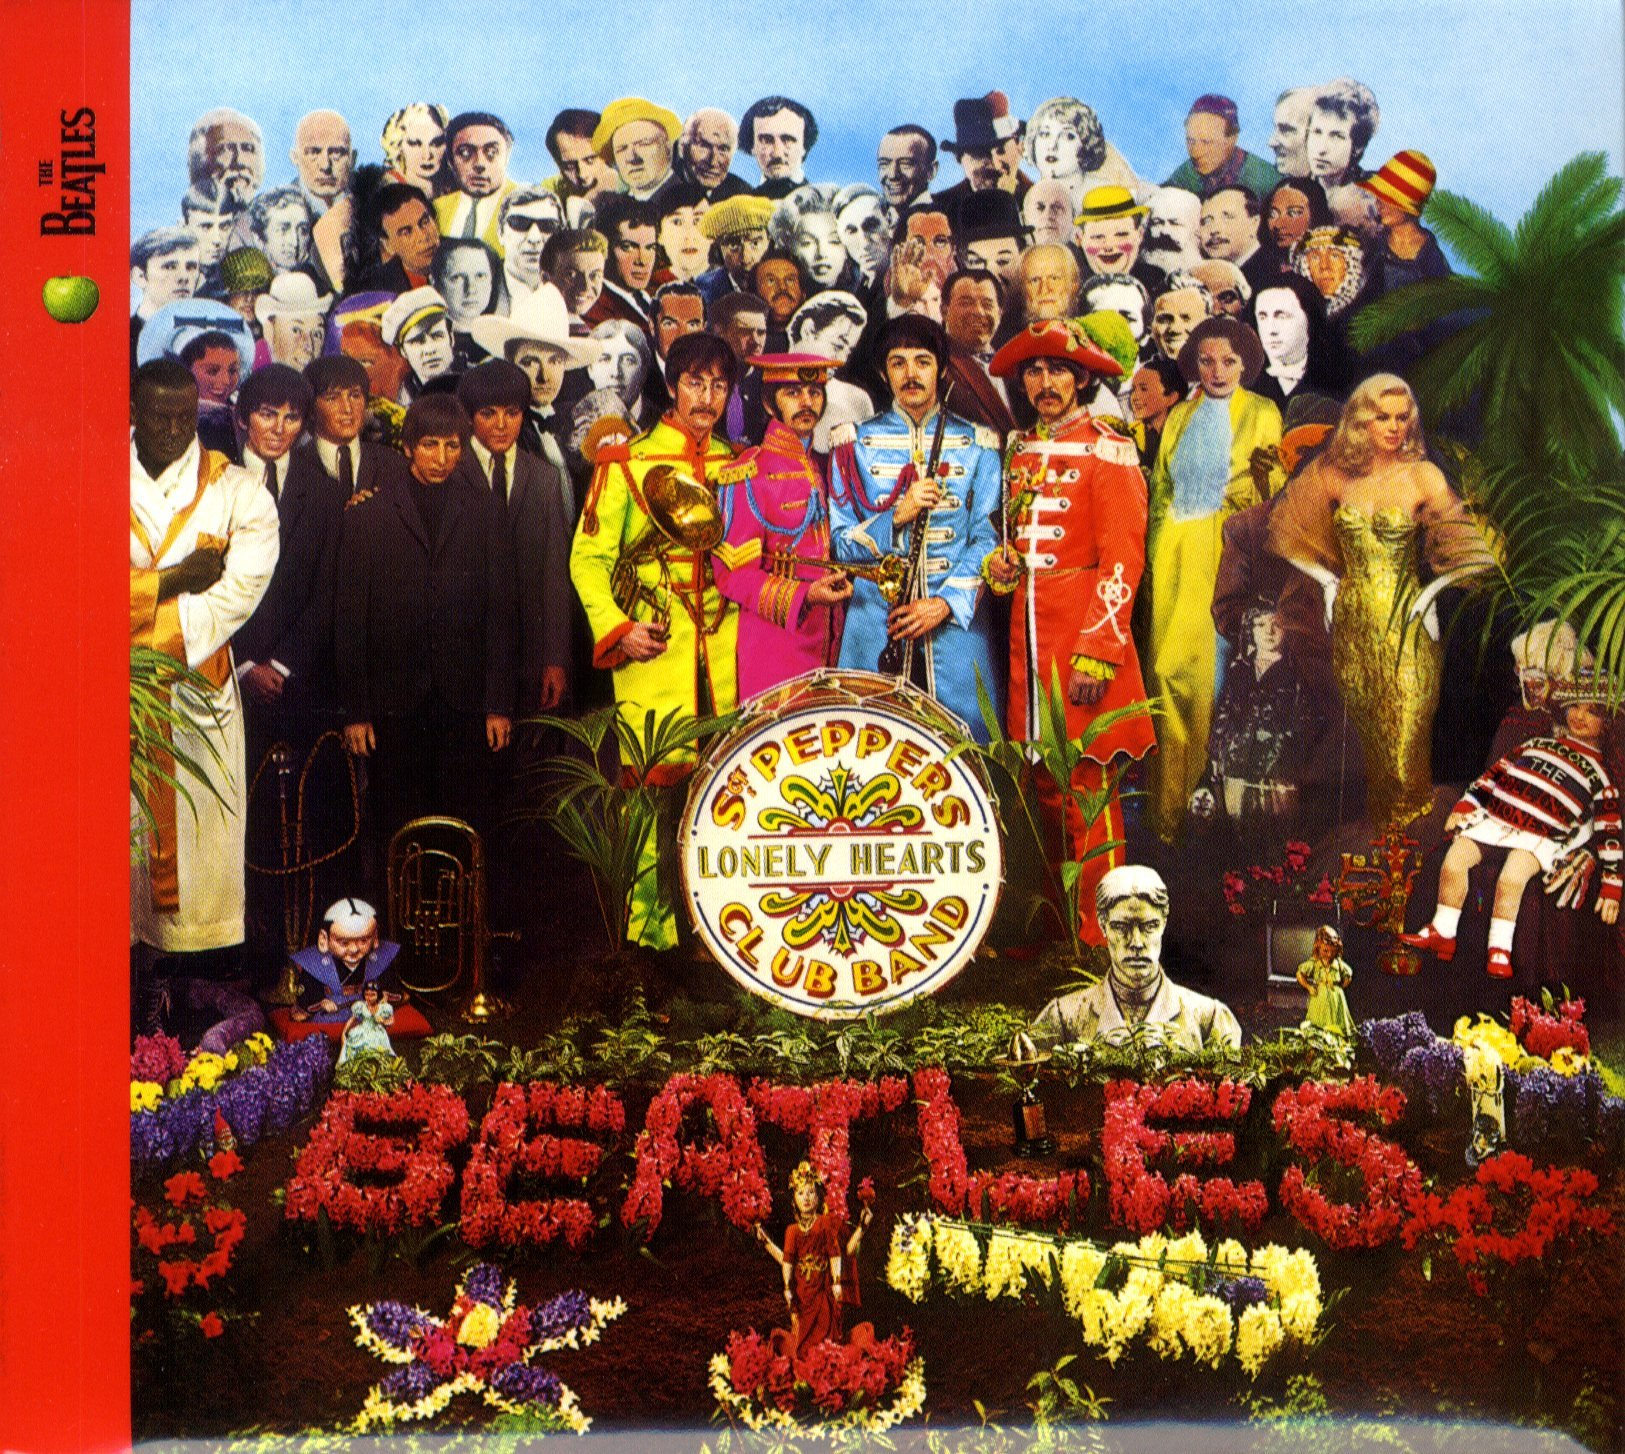 Sgt. Pepper's Lonely Hearts Club Band 4